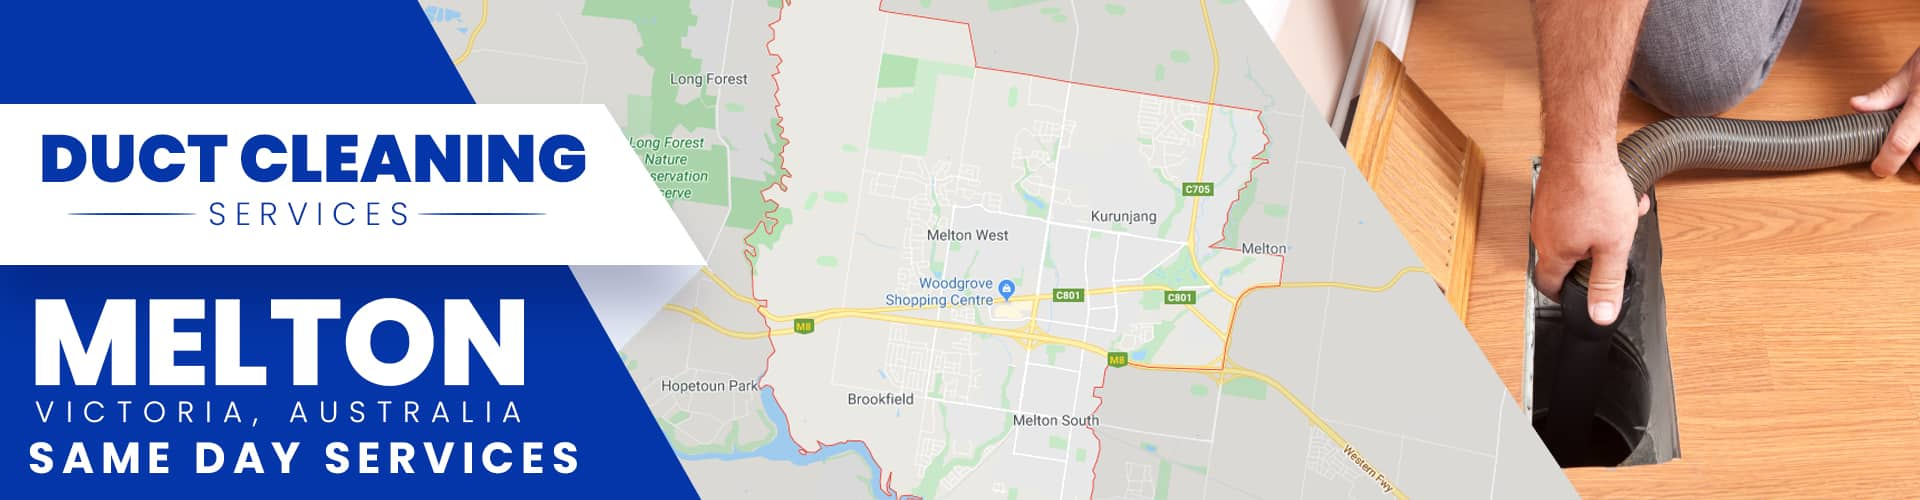 Duct Cleaning Melton